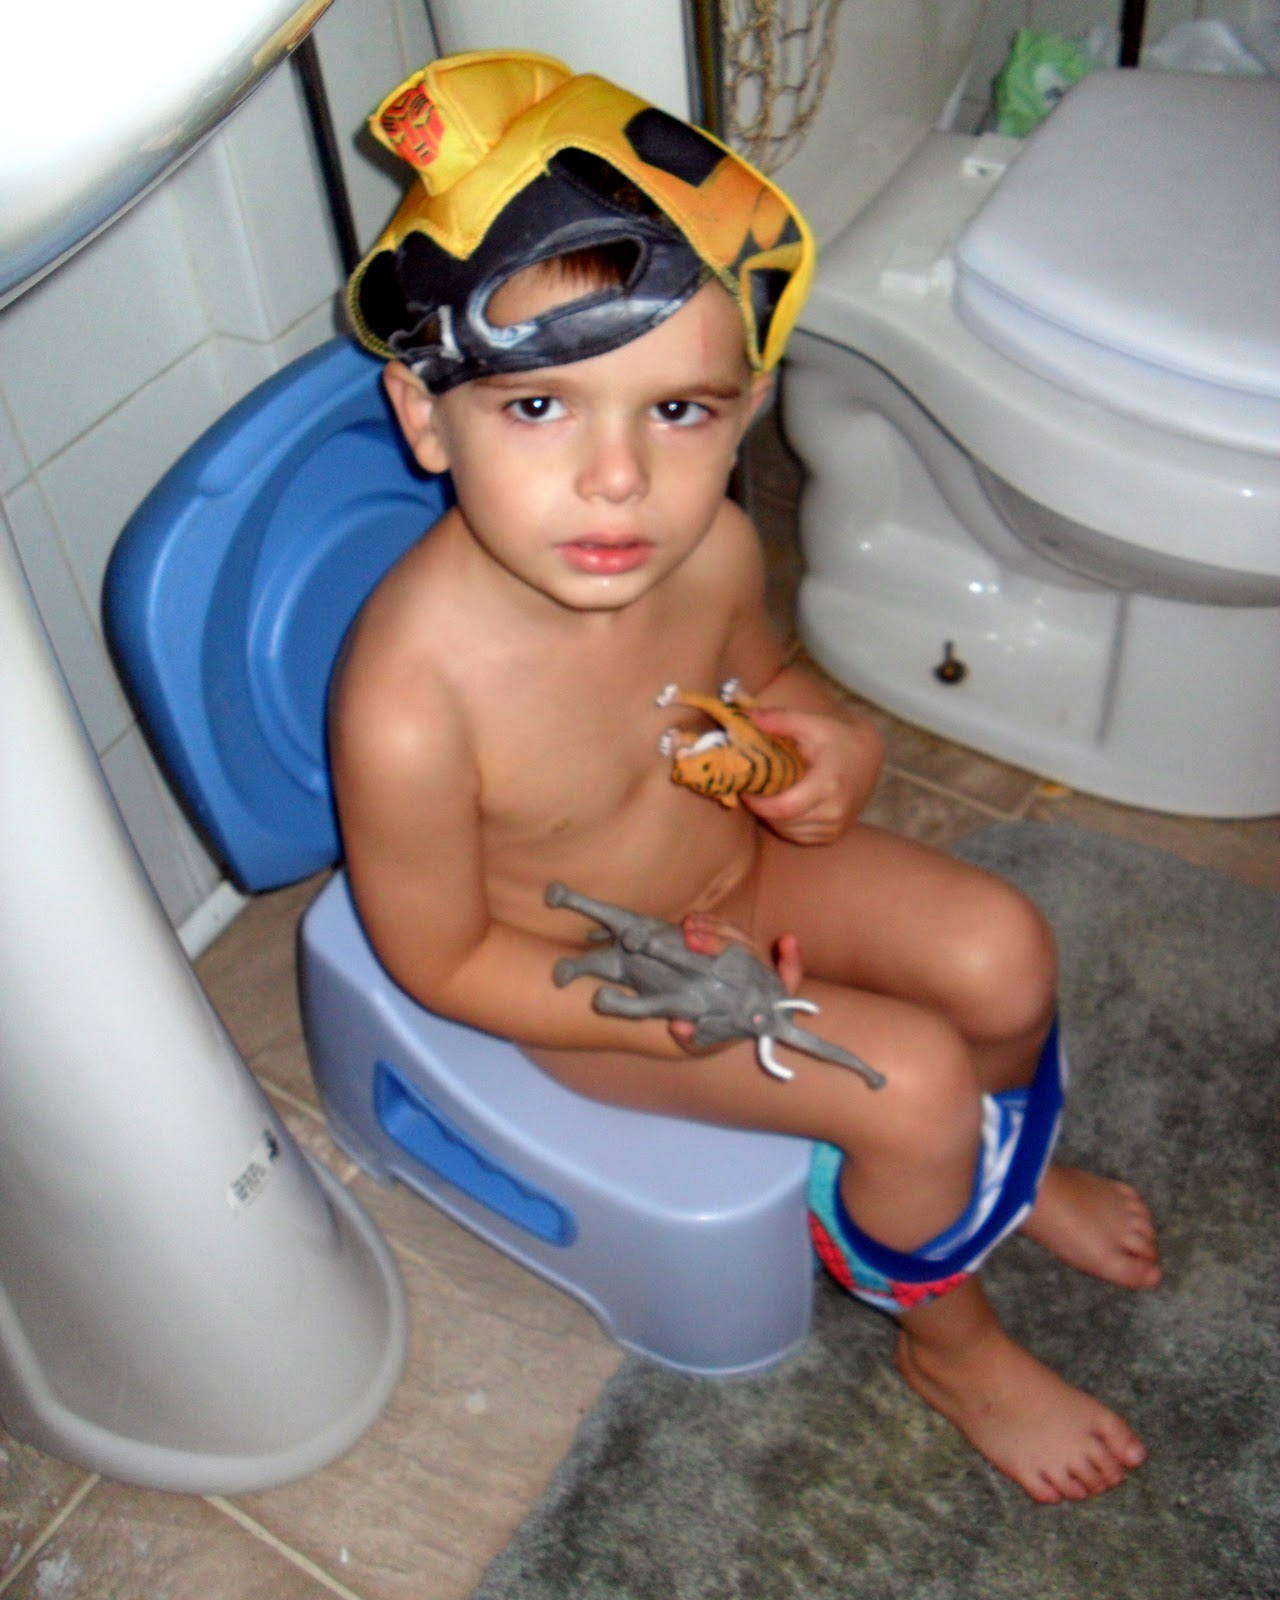 Boy Pees Off Porch - Bing images